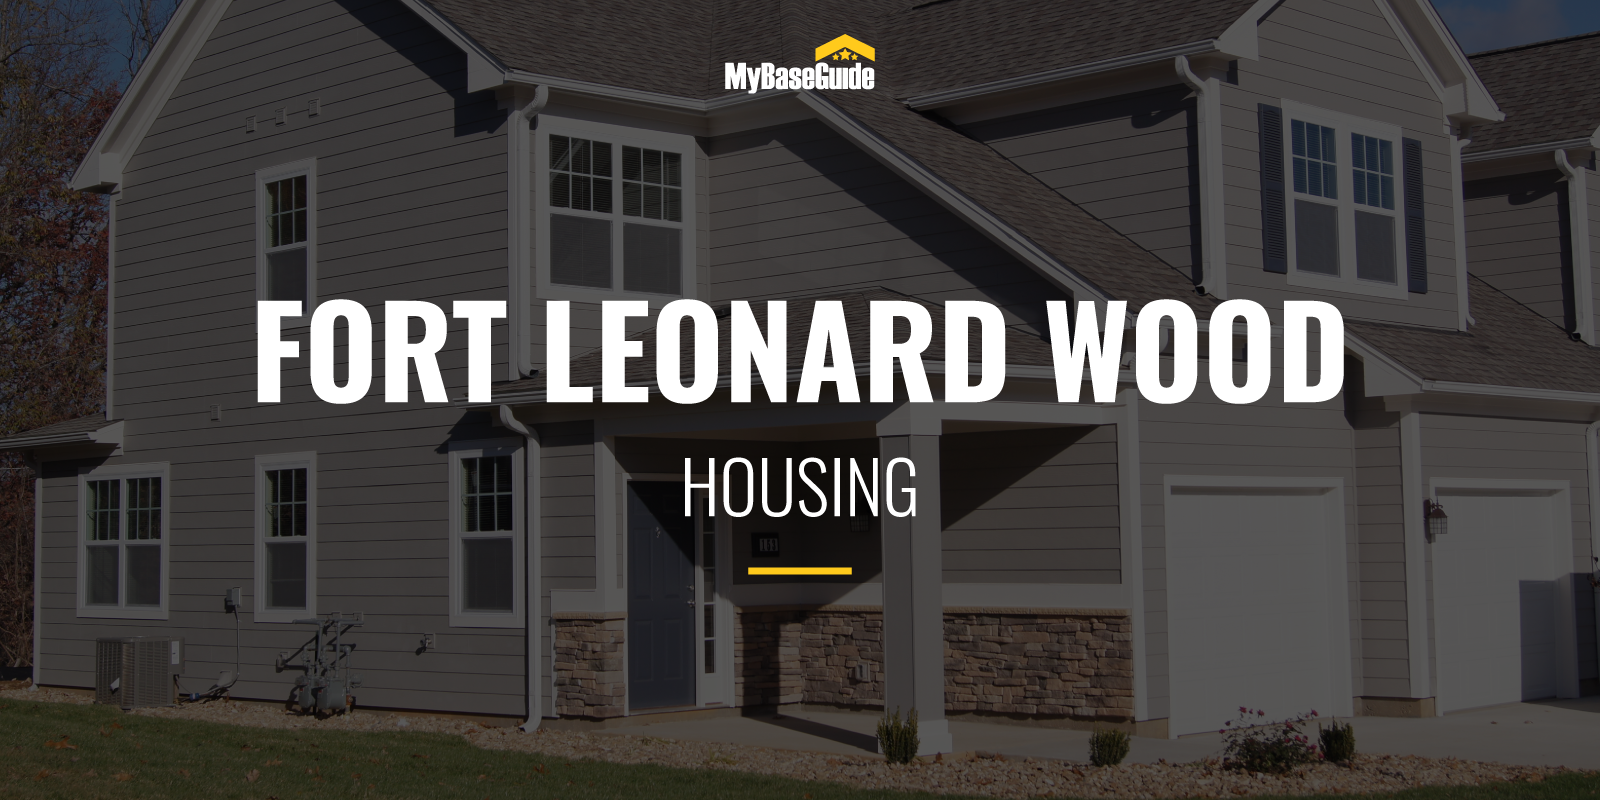 Fort Leonard Wood Housing